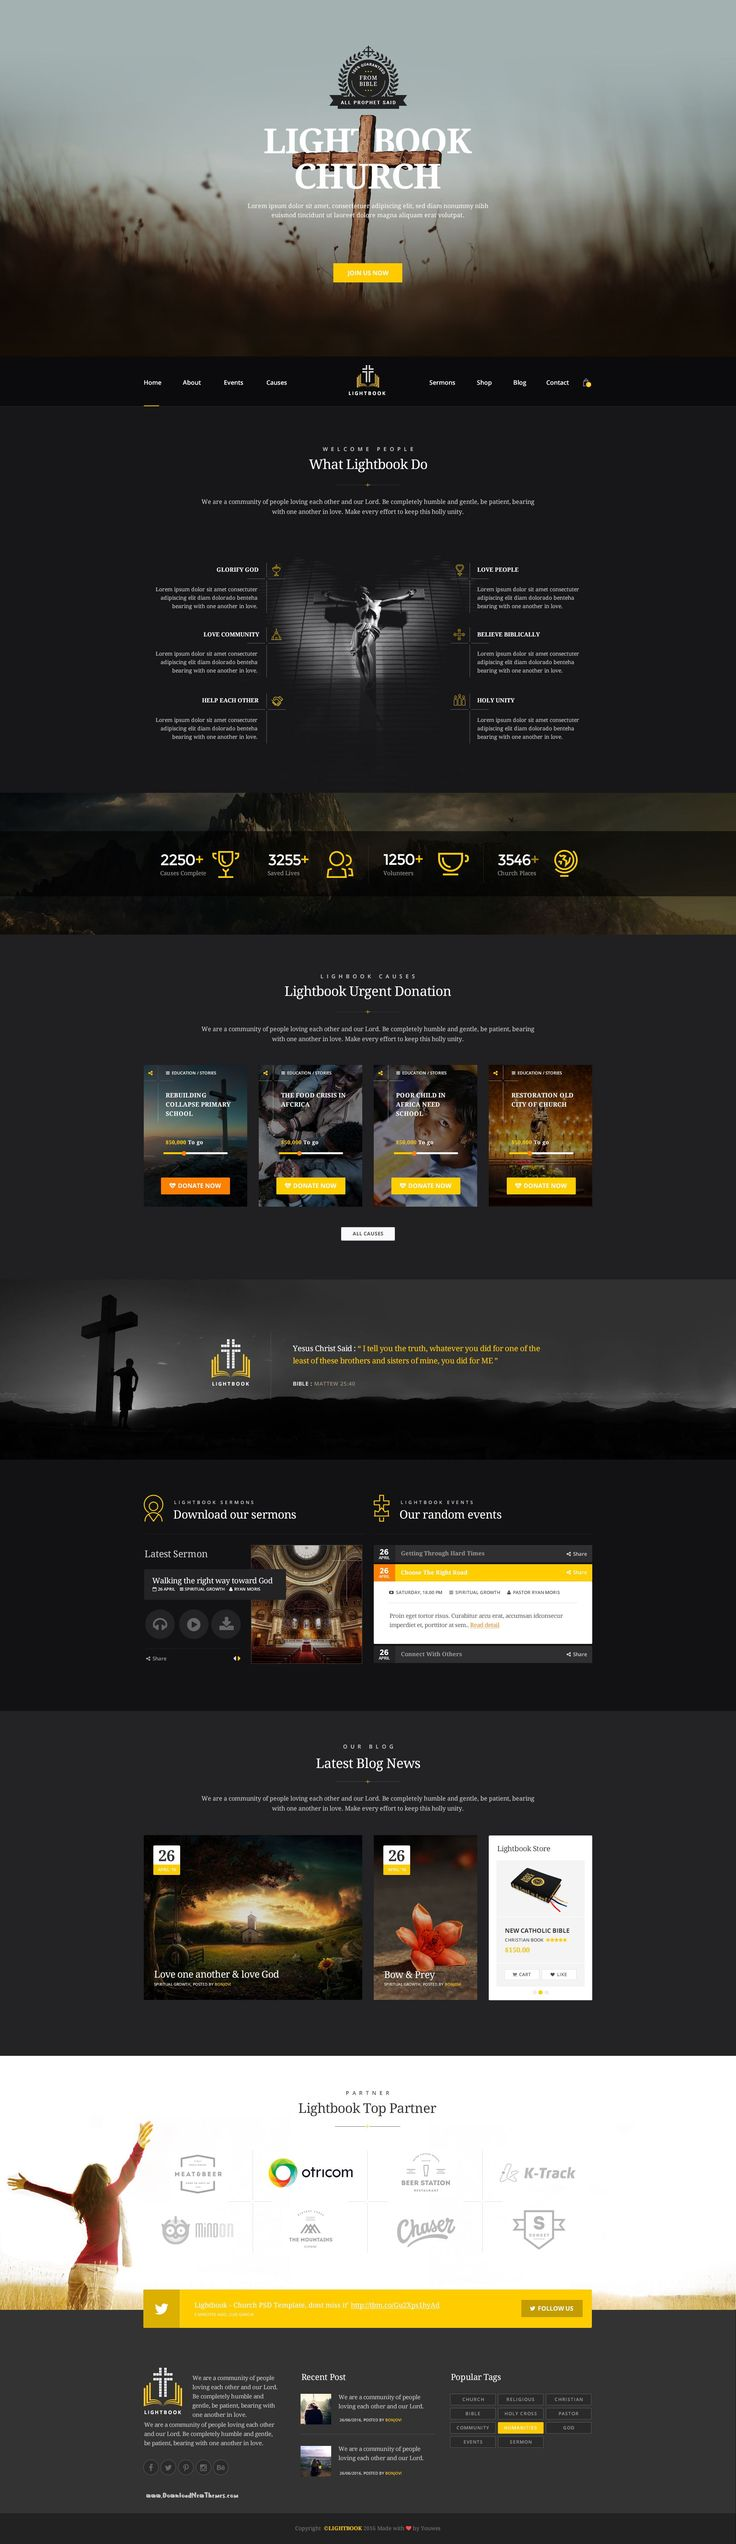 LightBook Church PSD template With the complete package you have a wide range of possibilities to design almost any kind of personal and professional web layouts. #charity #Church #website